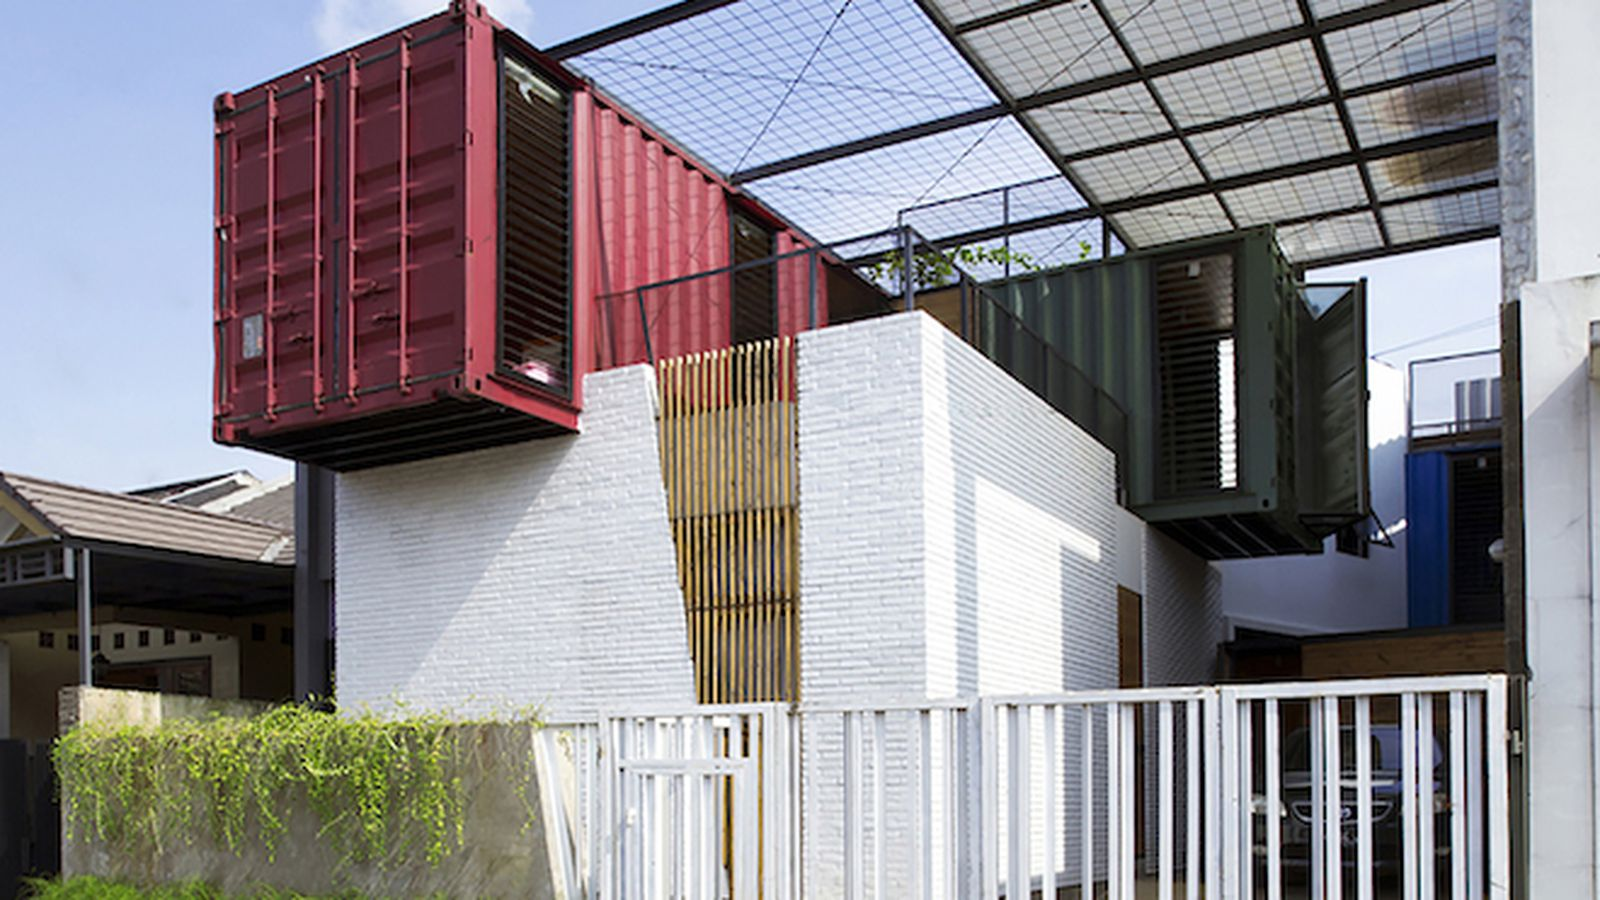 Four shipping containers top this rad tropical home curbed - Shipping container homes chicago ...